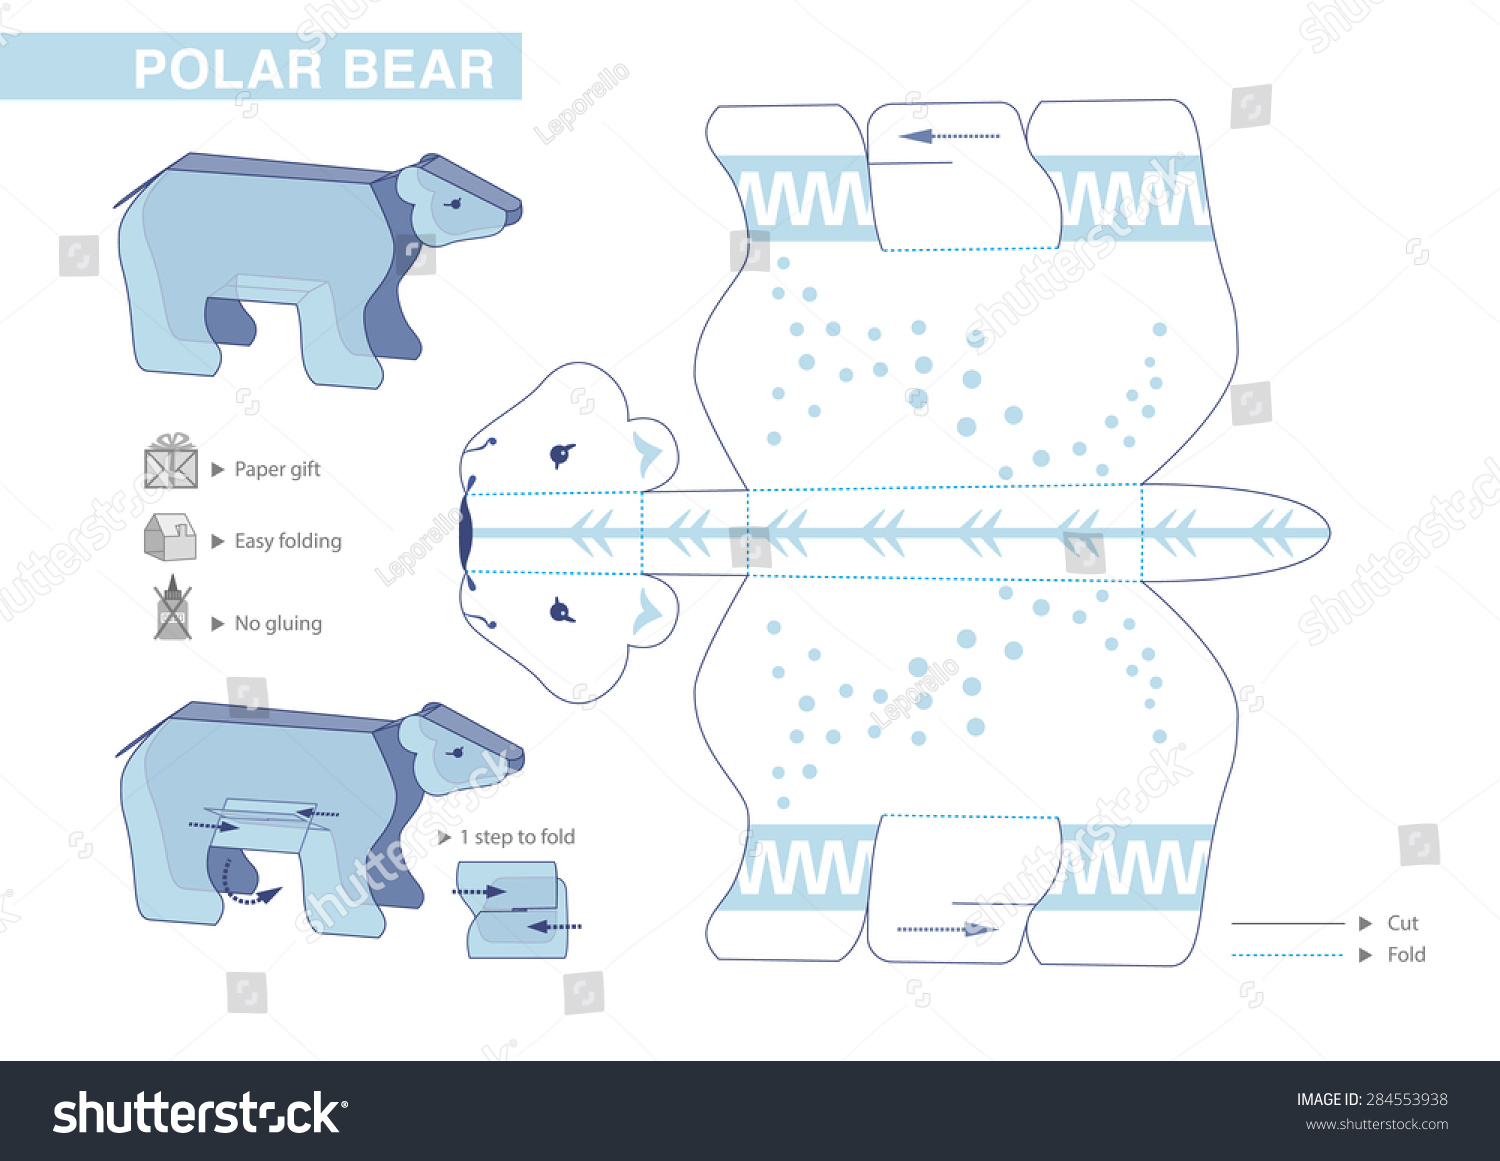 Polar Bear Paper Model Cut Outs For Children Small Home Craft Project Or